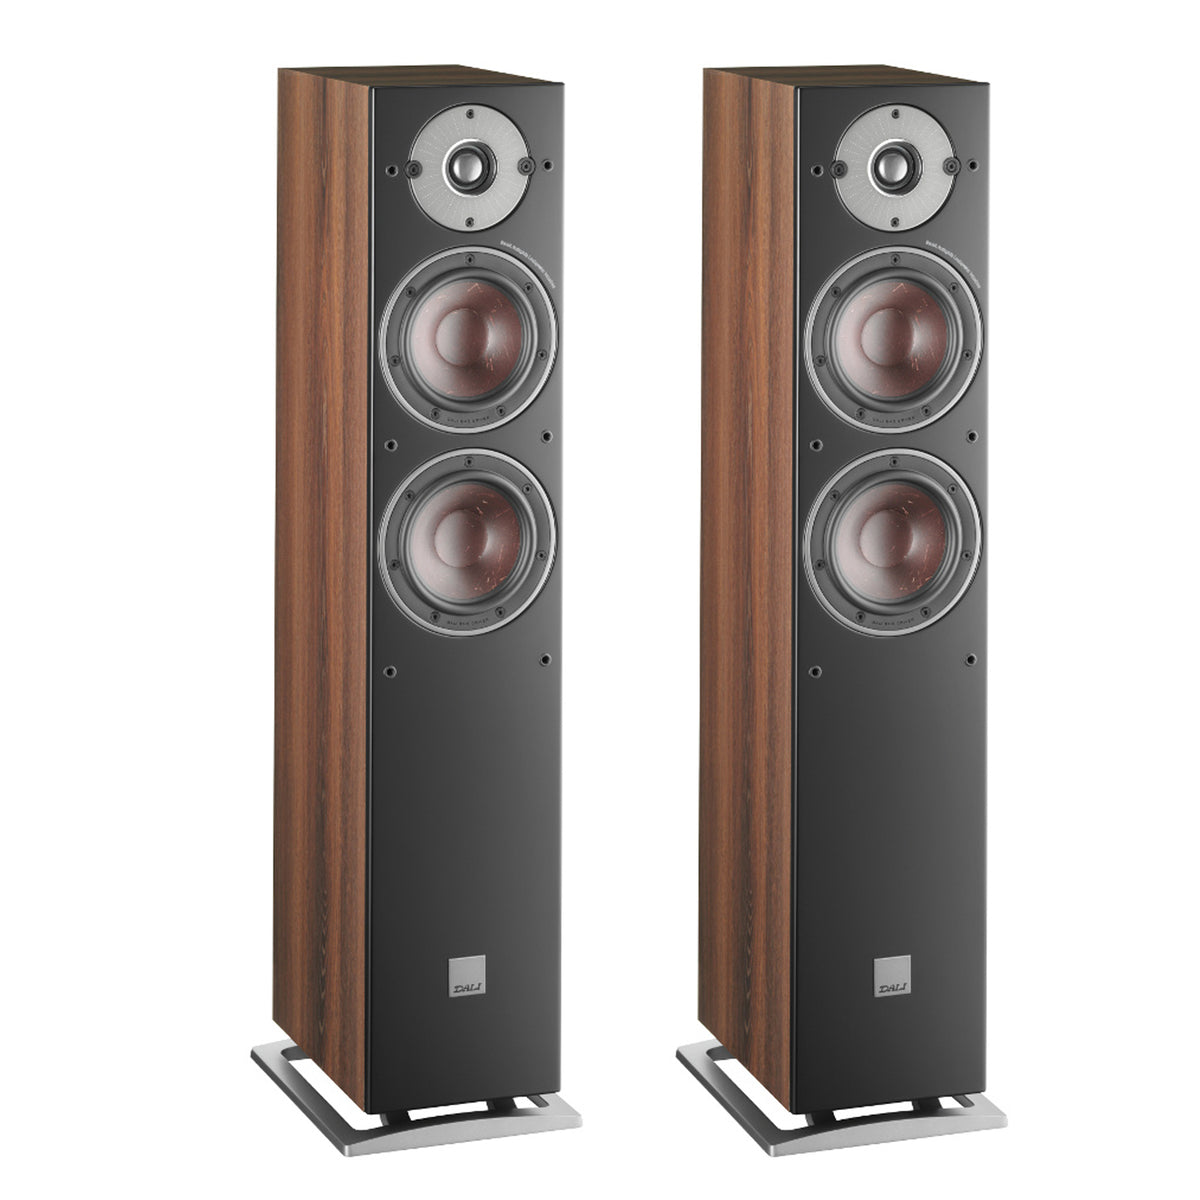 Dali: Oberon 5 Passive Floorstanding Speakers - Dark Walnut (Pair)